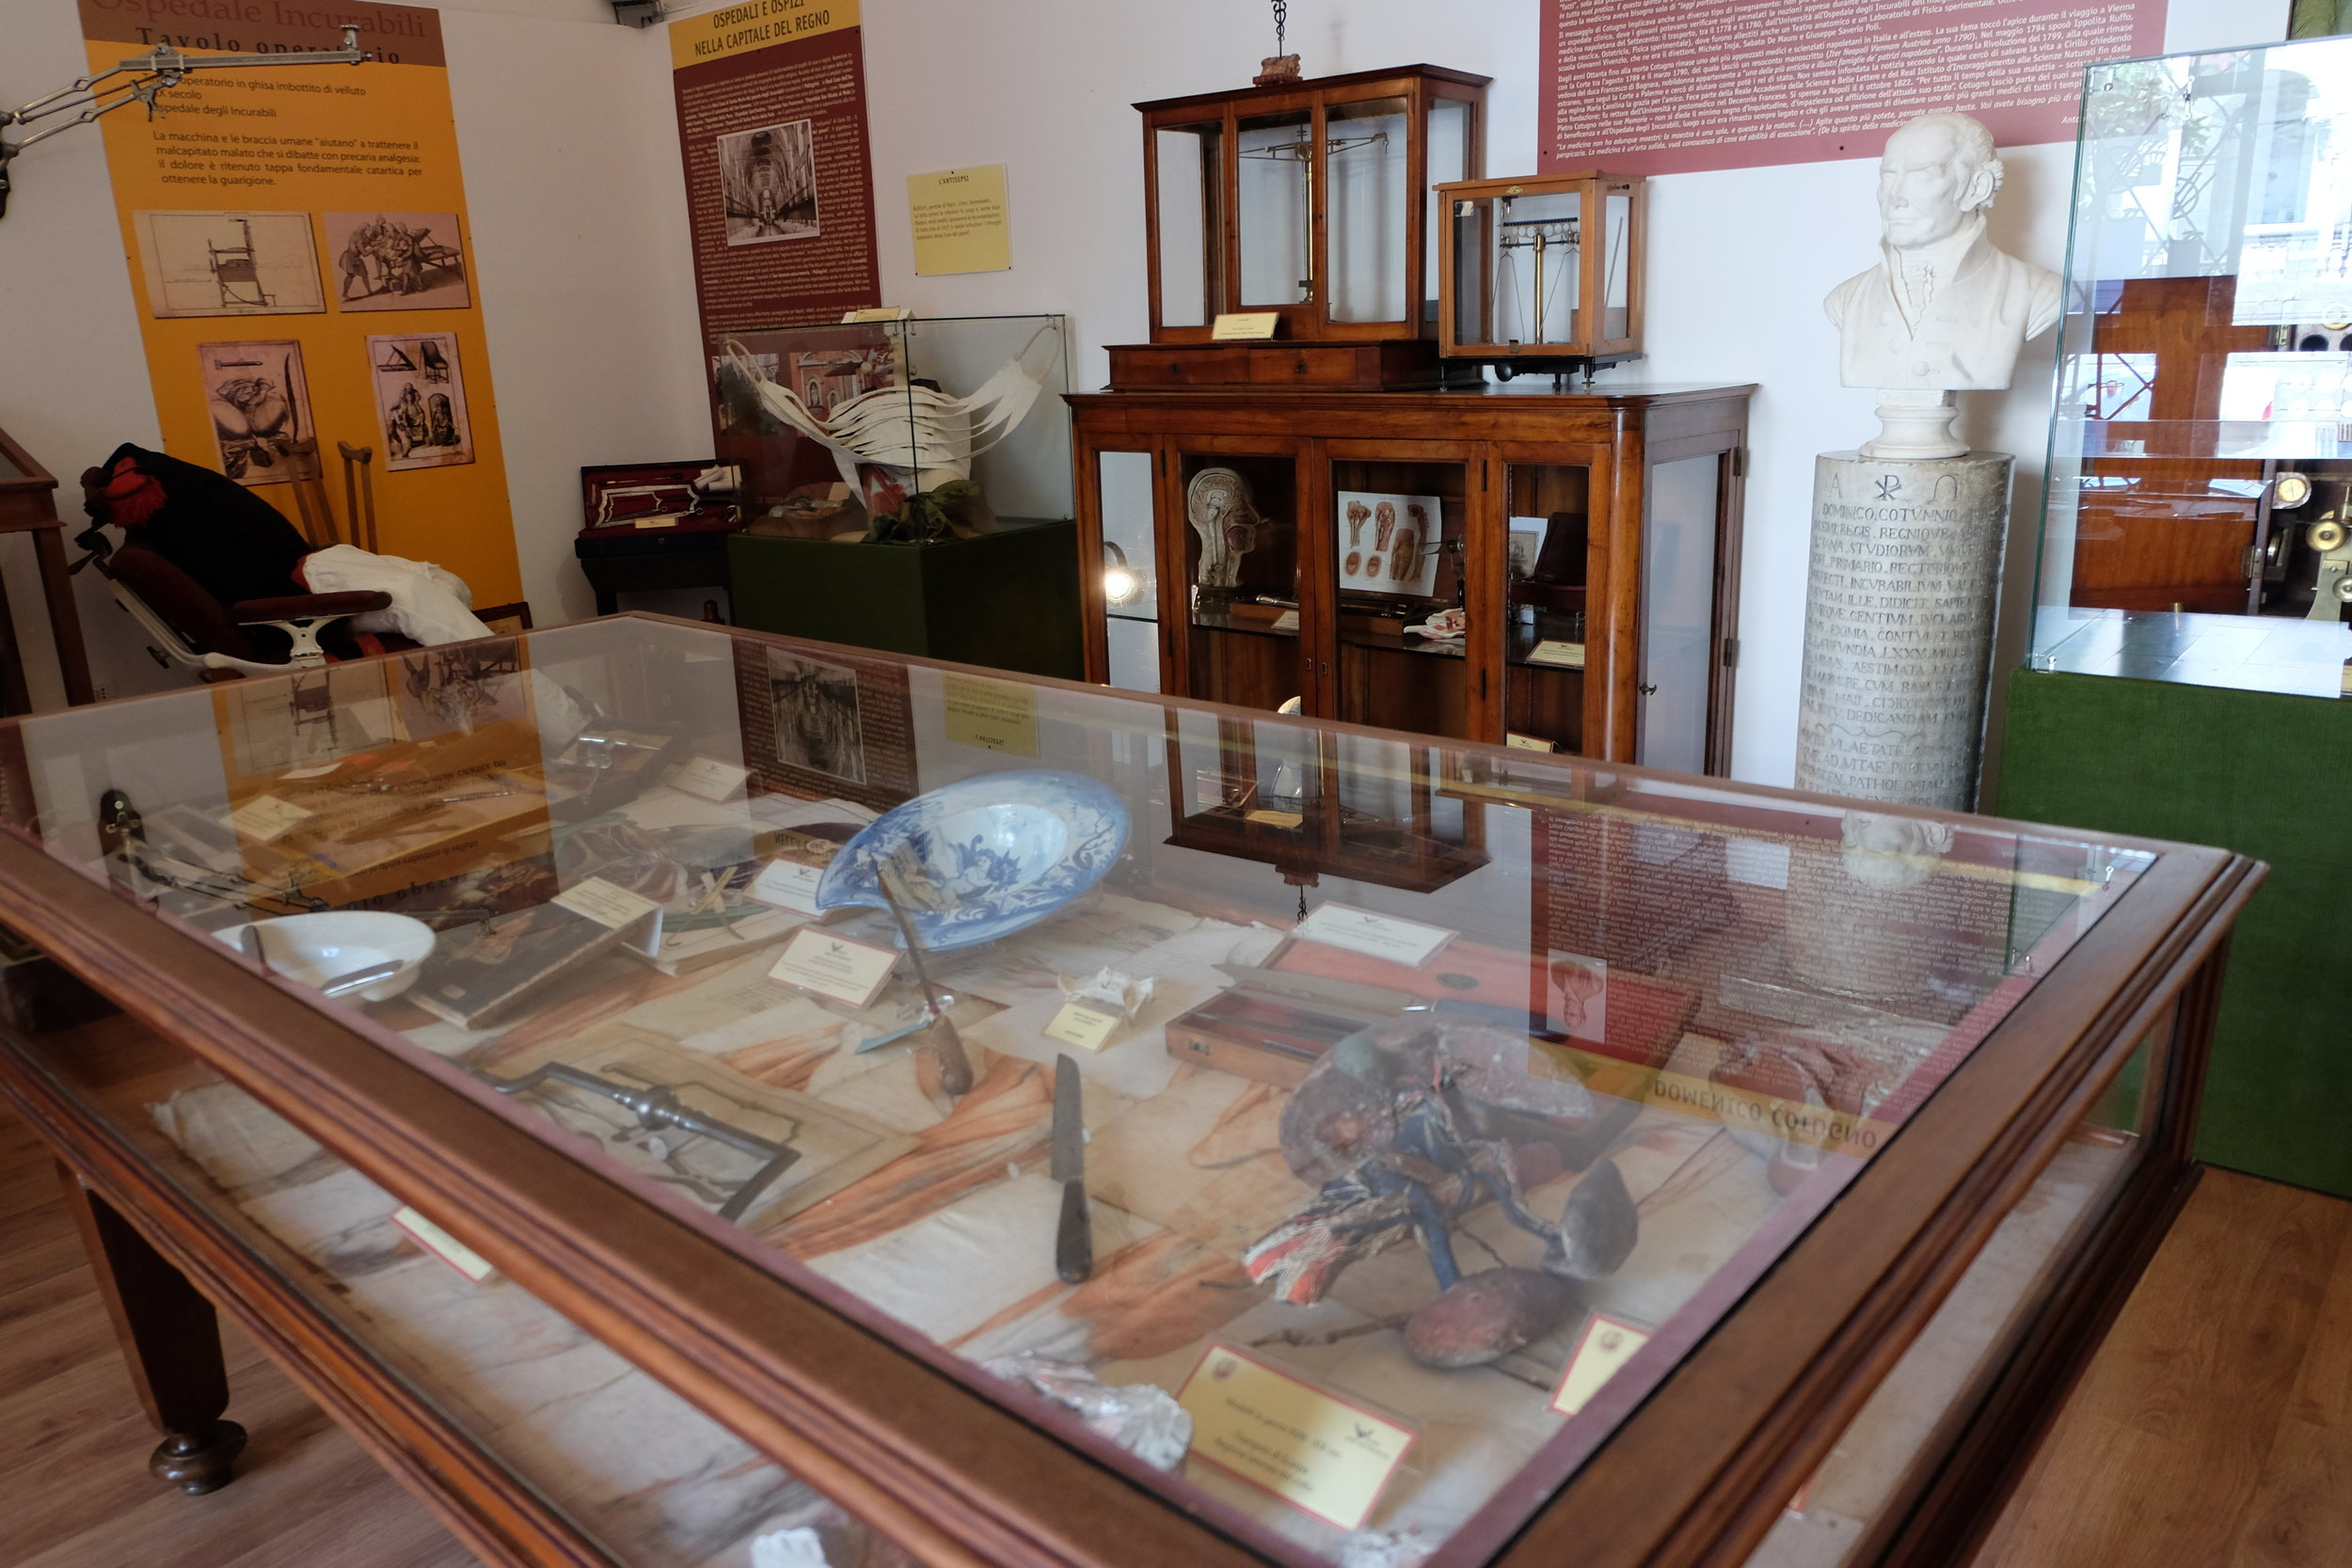 The rooms of the Museum show artefacts from the history of Medicine.